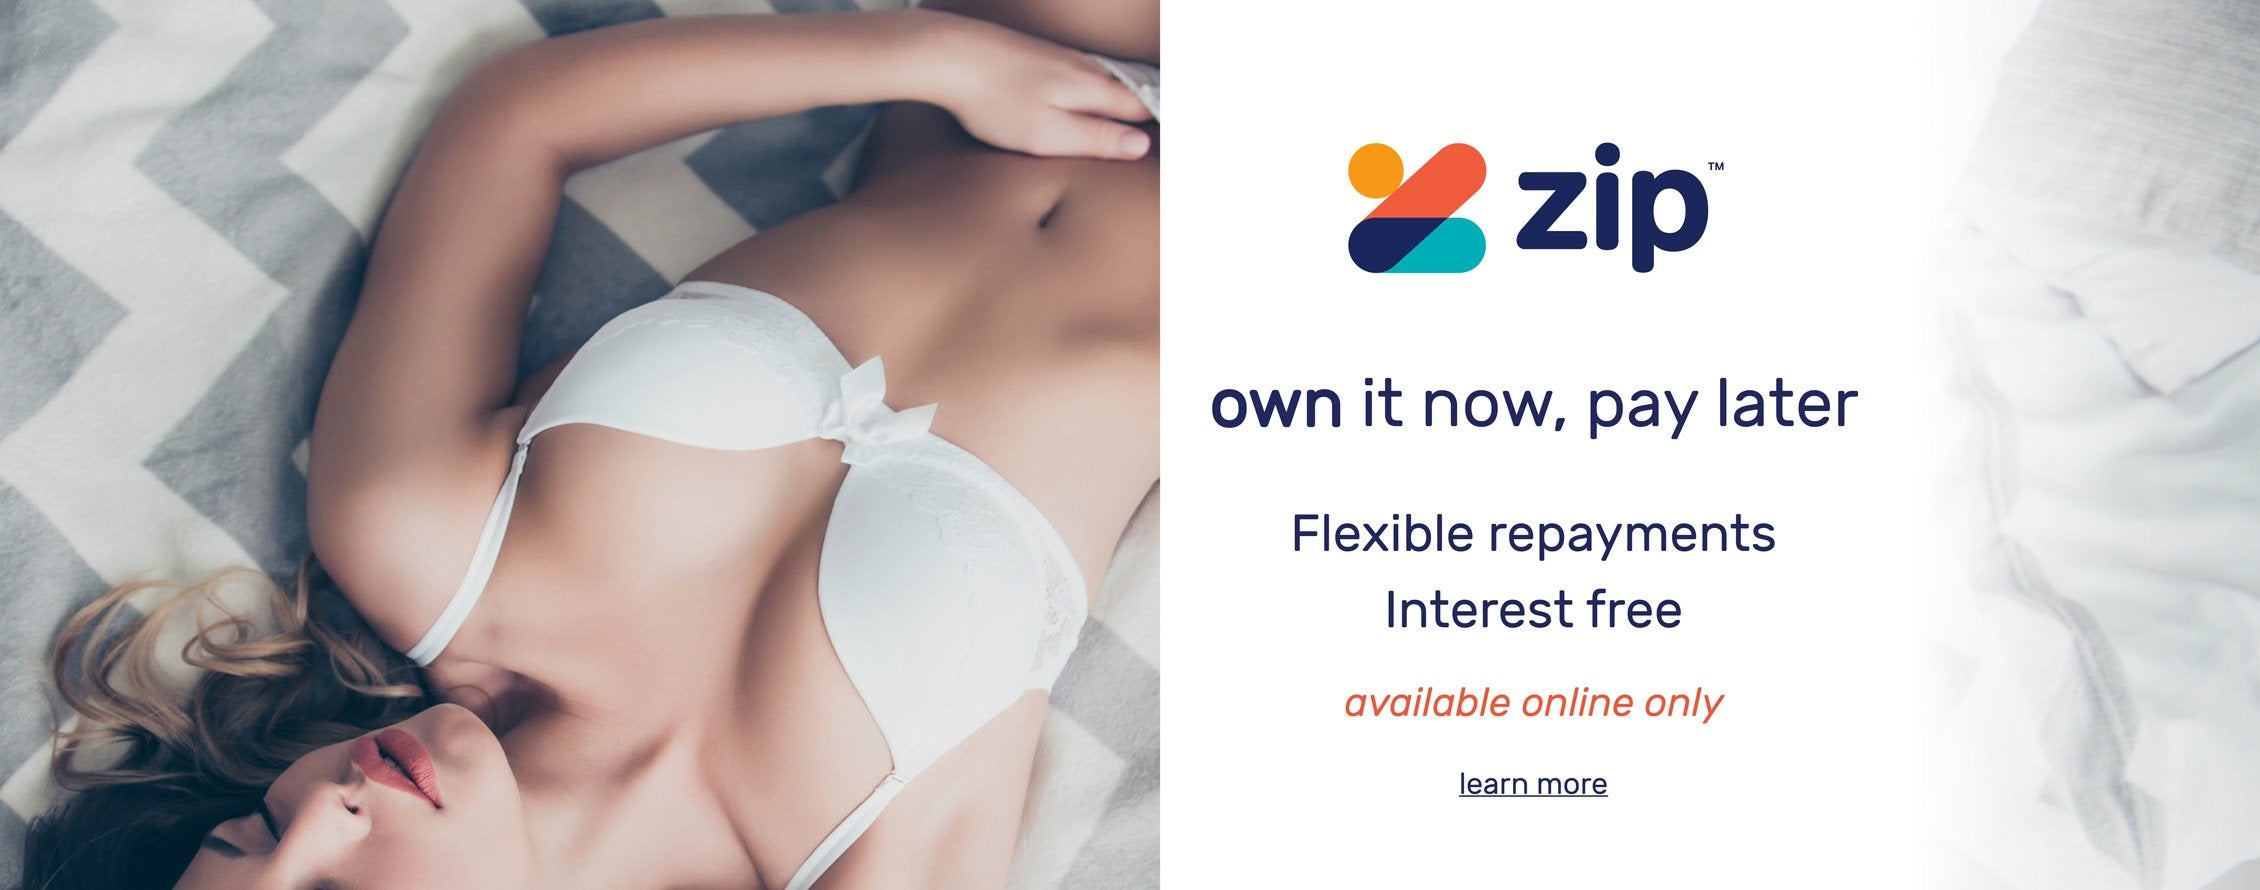 get Zip - own it now, pay later